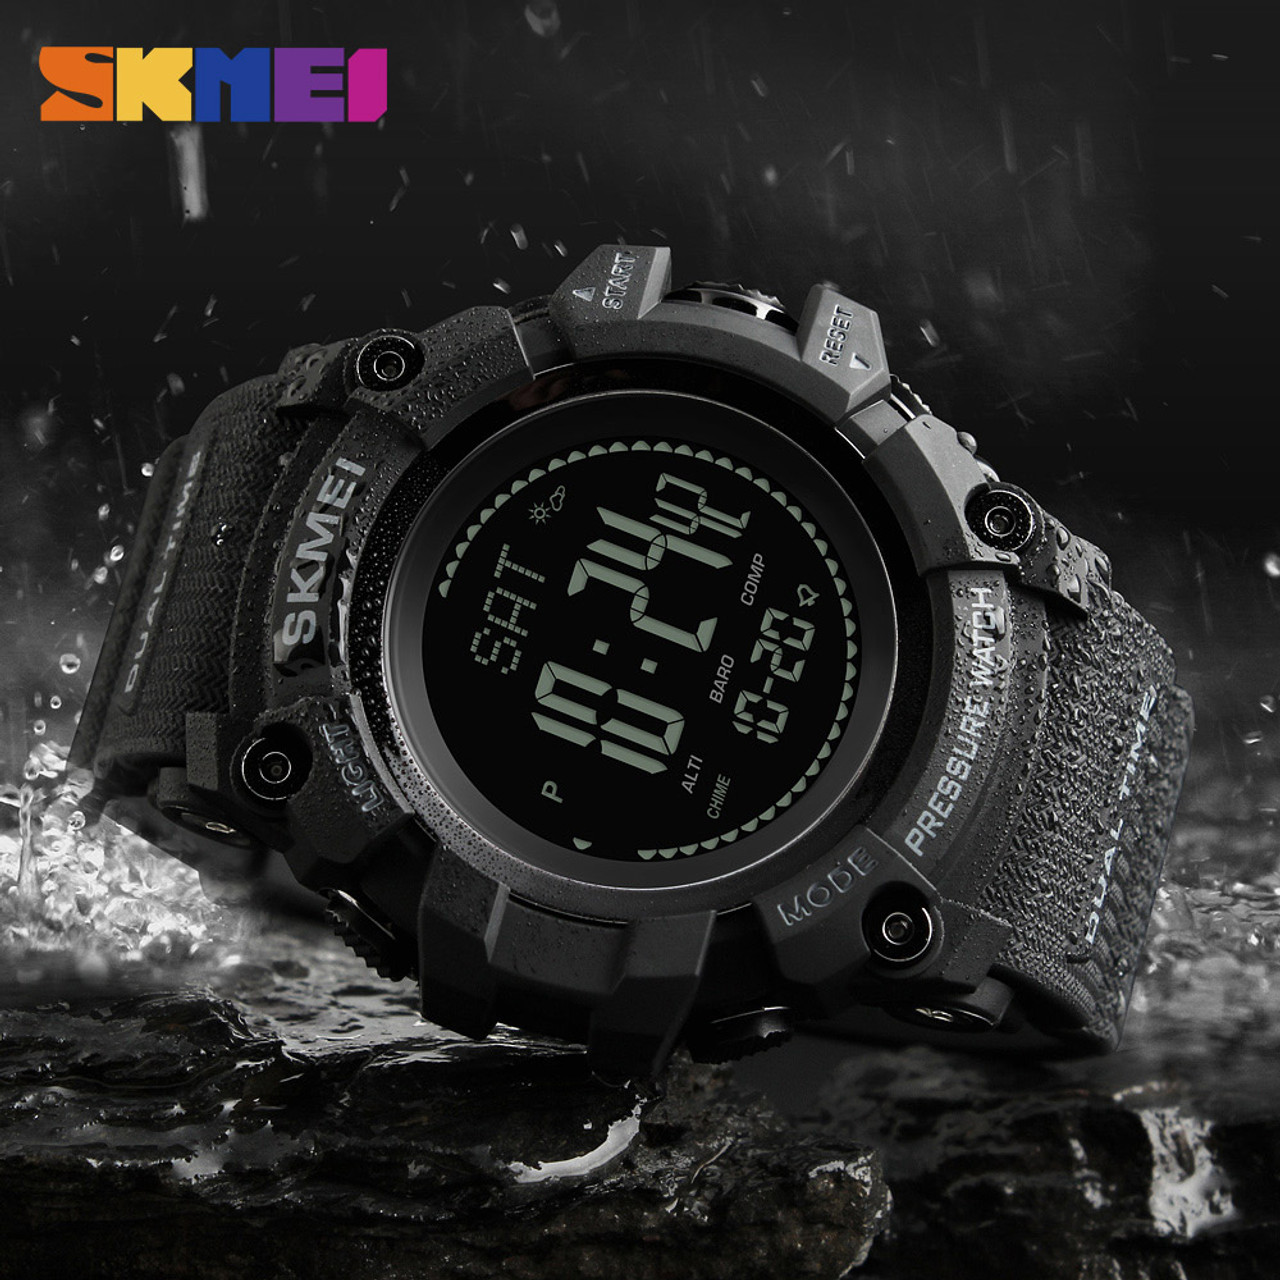 Sports Watches Men Compass Waterproof Outdoor Countdown Repeater Alarm World Time Digital Wristwatches Relogio Masculino Skmei Men's Watches